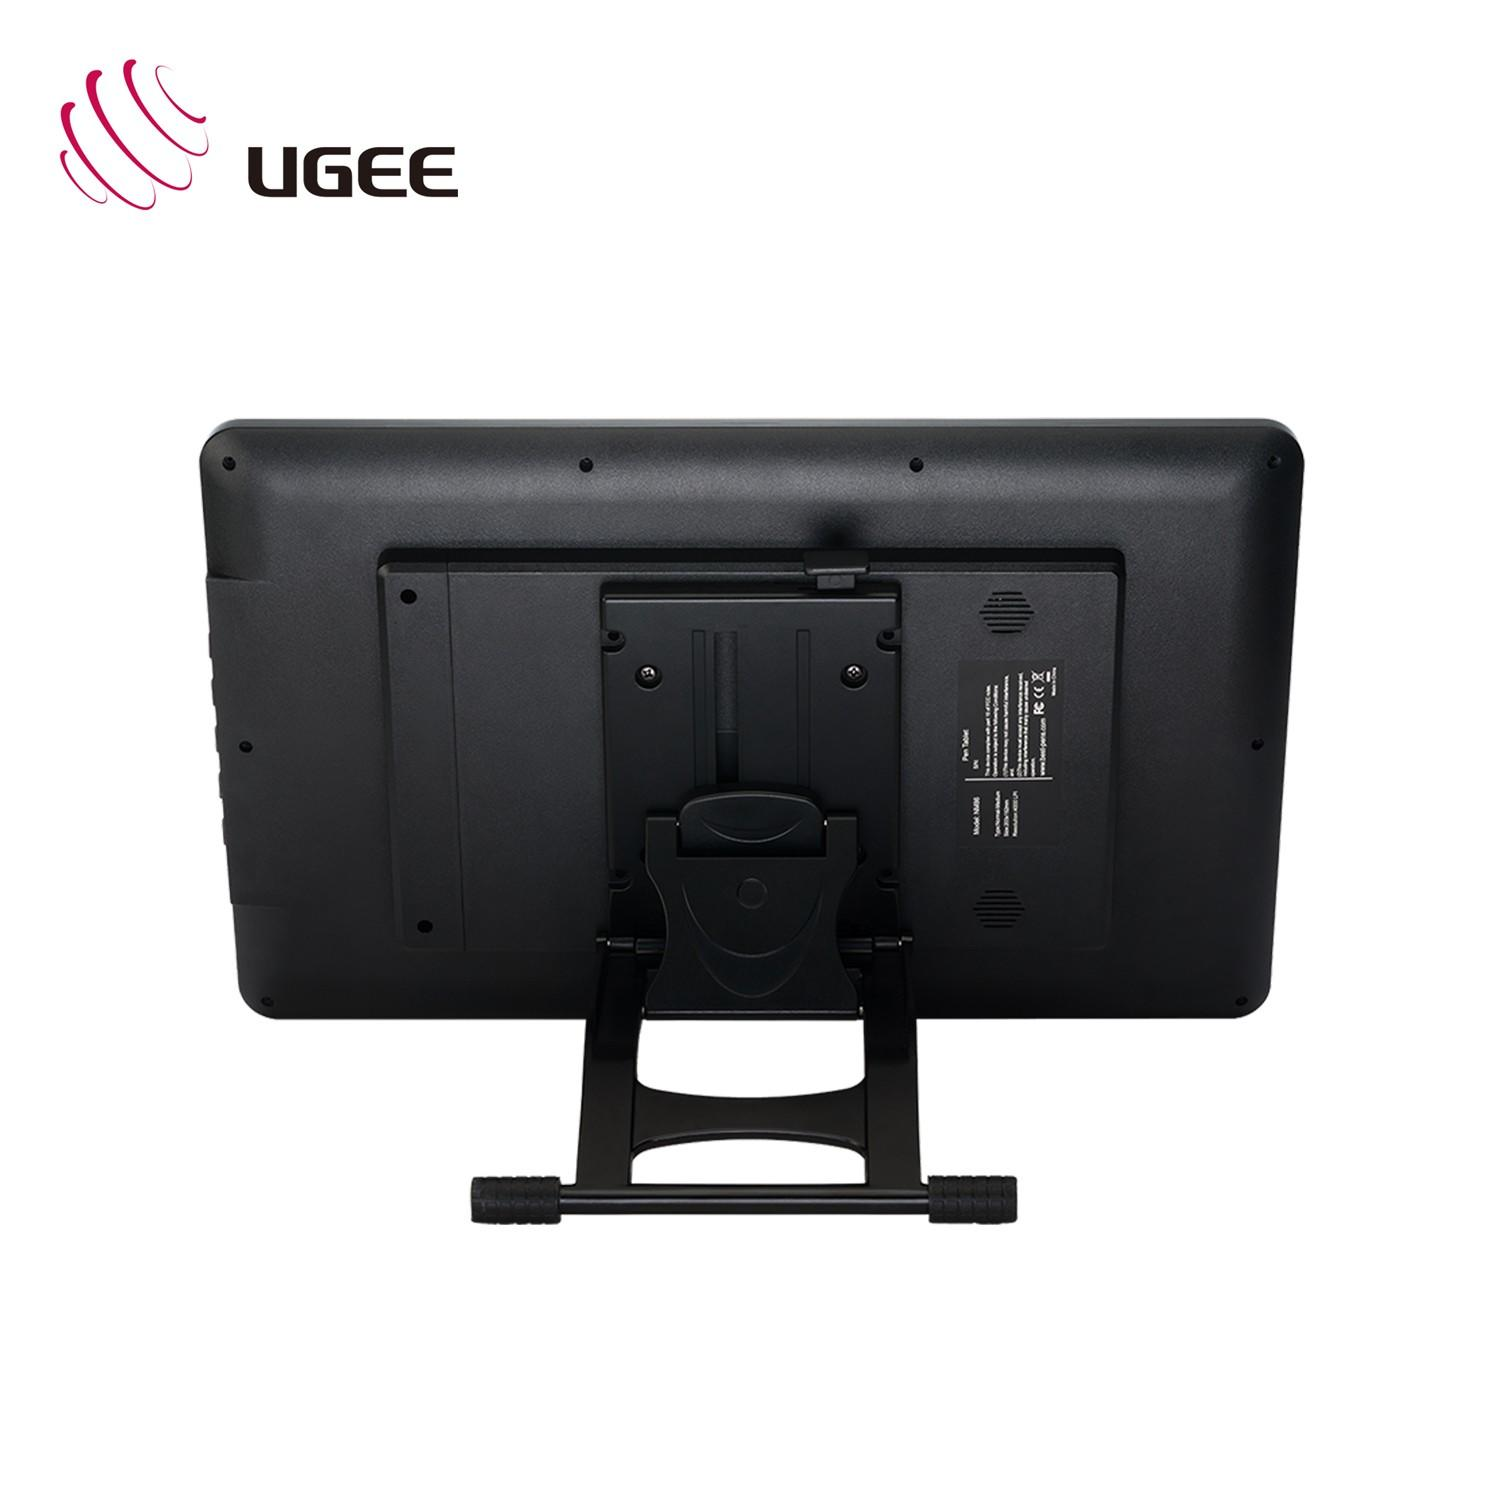 Ugee-Quality Ugee Brand Design Signature Pad | Buy Handwriting-1